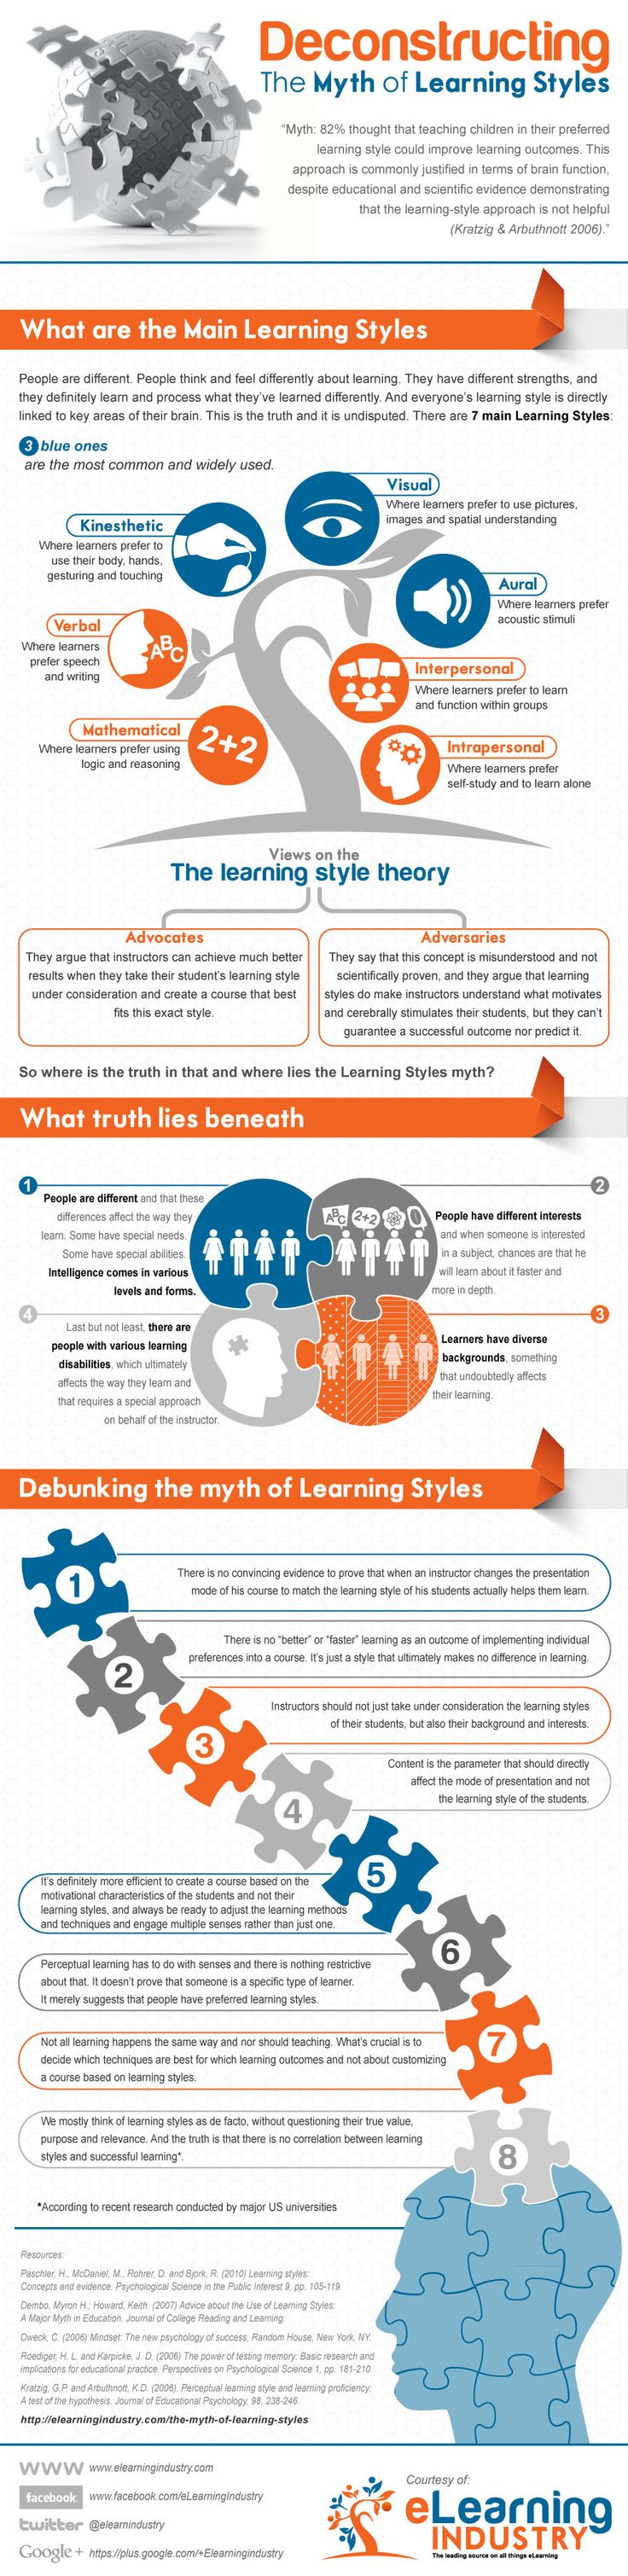 The Myth of Learning Styles Infographic plus a very informative article to Debunk the myth of Learning Styles!